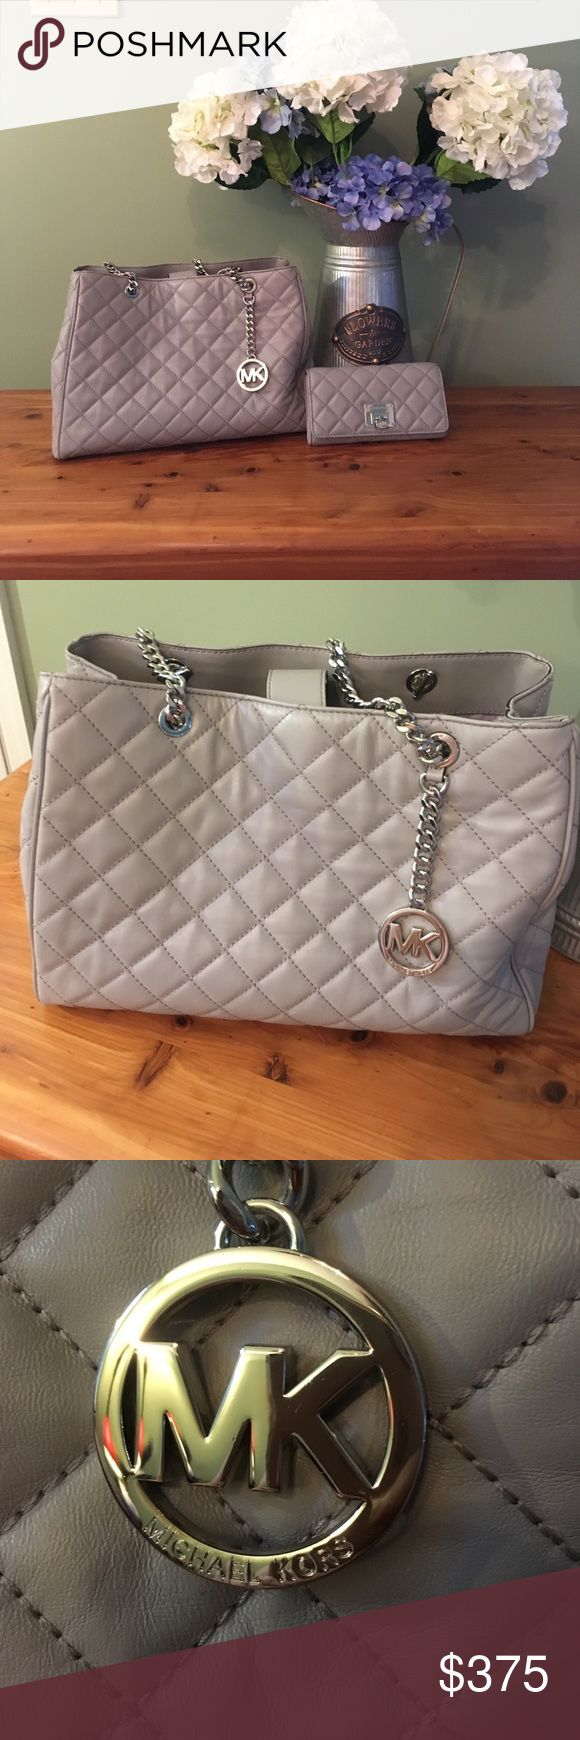 Michael Kors quilted leather large tote & wallet Michael Kors quilted leather Susannah Large tote bag in pearl gray & Astrid carryall clutch quilted pearl gray. These items were purchased in April 2017 & I changed my mind.  Only used a handful of times and was protected with Michael Kors leather cleaner & conditioner & protect solution.  Like brand new condition.Large tote has beautiful silver chain details & soft quilted leather.It has a zippered middle compartment & tons of other storage…